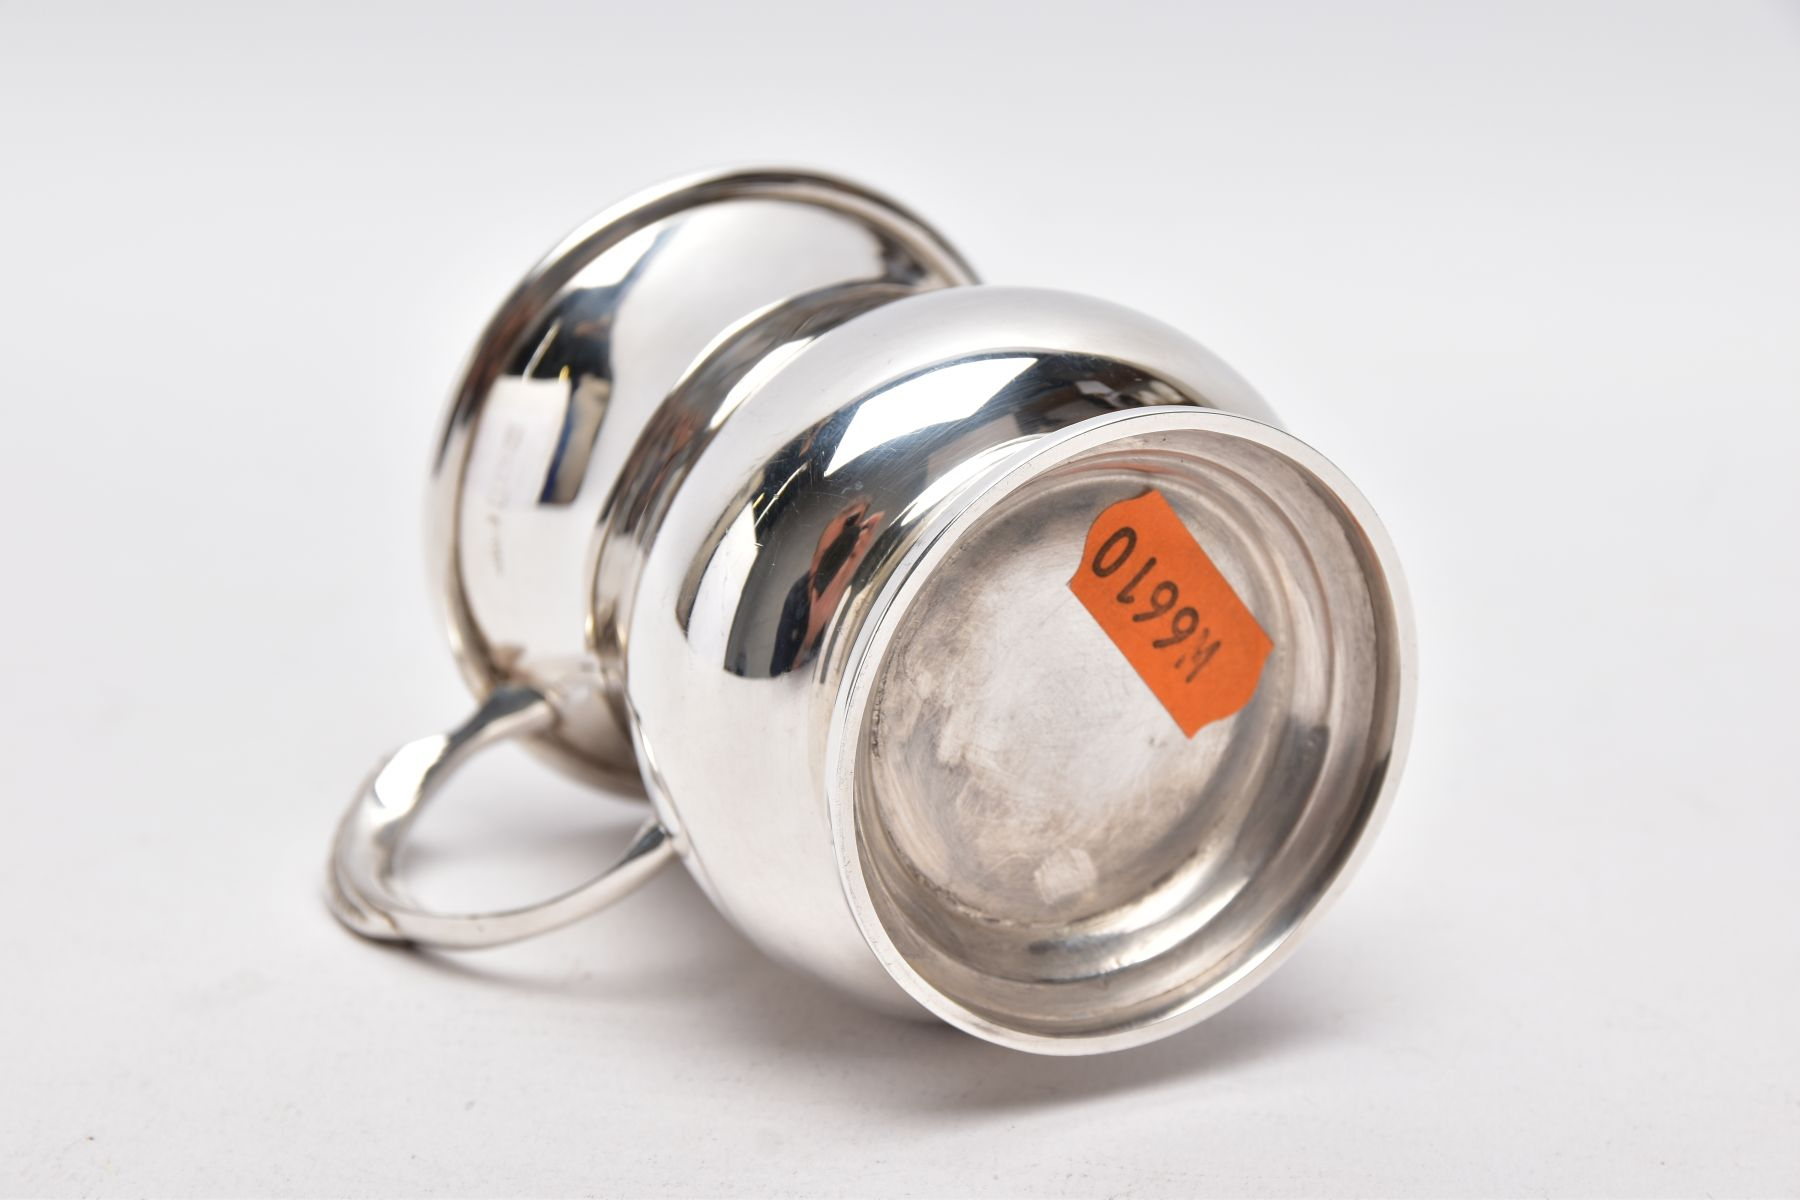 A SILVER TANKARD, bell shaped body with a feather detailed handle, hallmarked 'Roberts & Dore' - Image 5 of 5